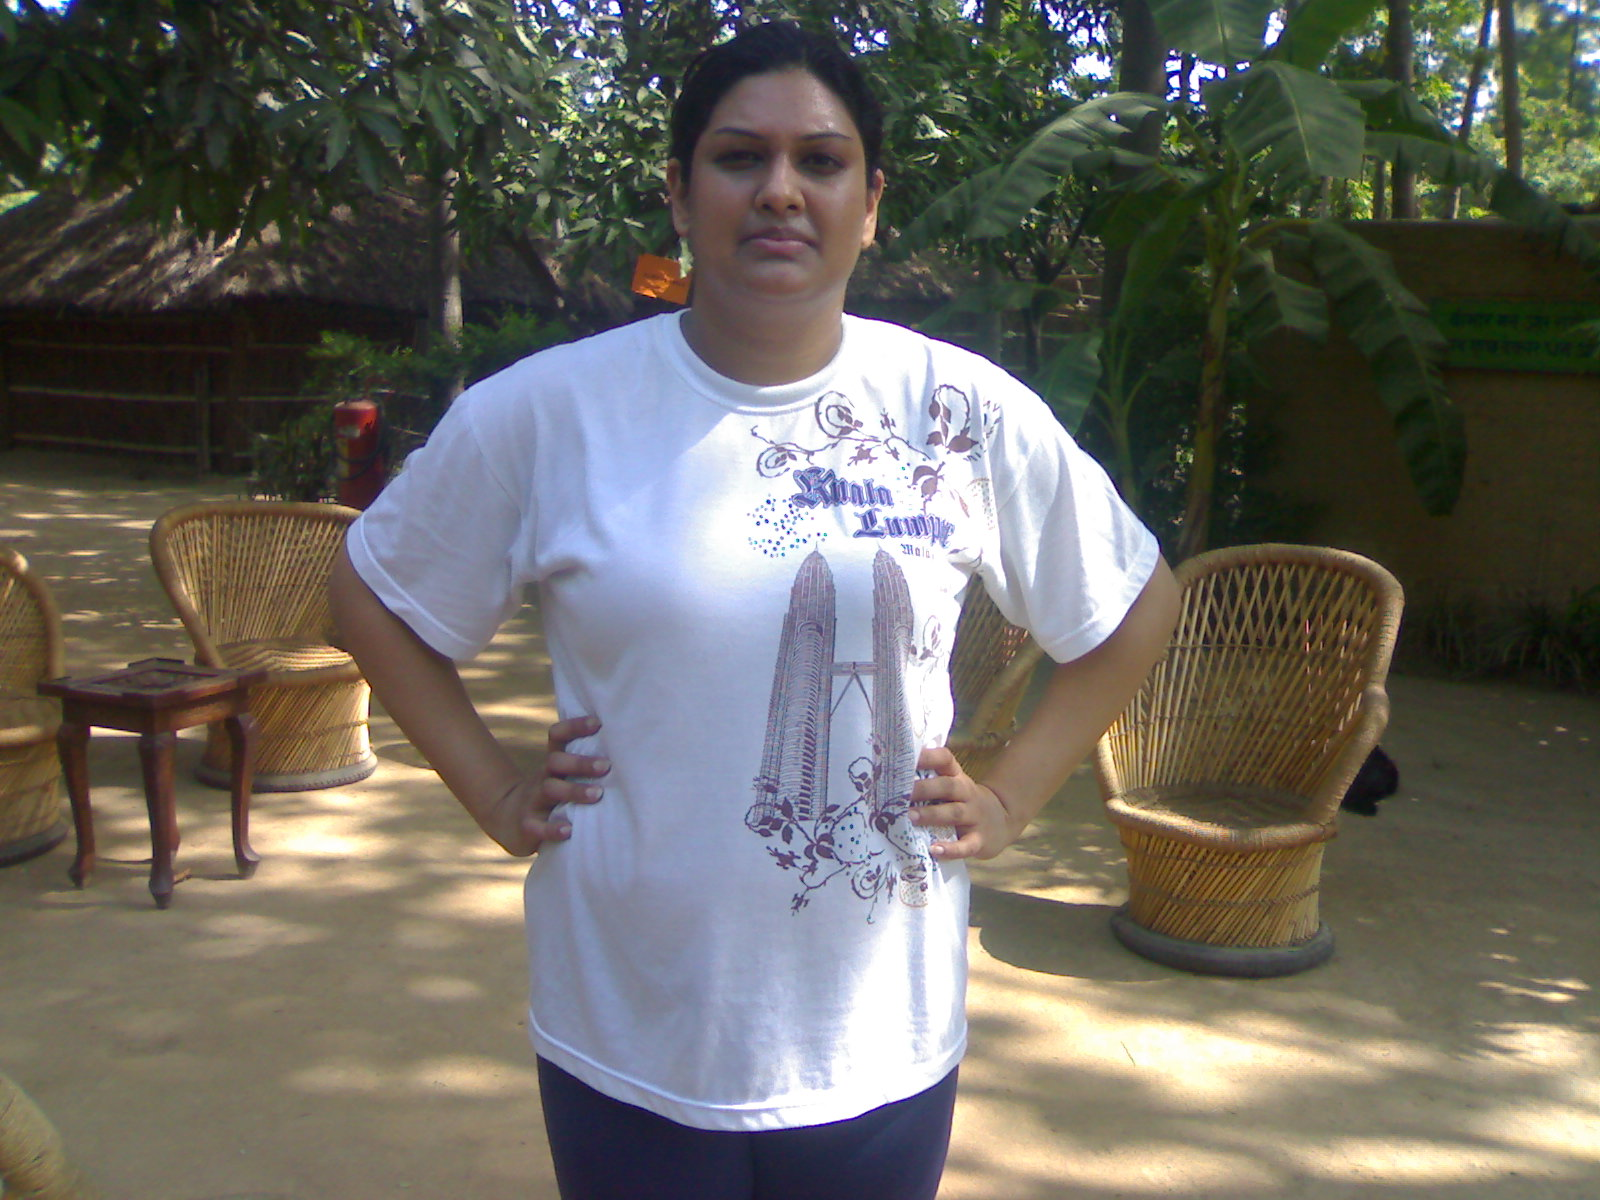 Naturopathy Resort Spa - Weight Loss, Inch Loss, Body Shaping for Slim- Trim Body Beauty Natural treatment for obesity - A Natur